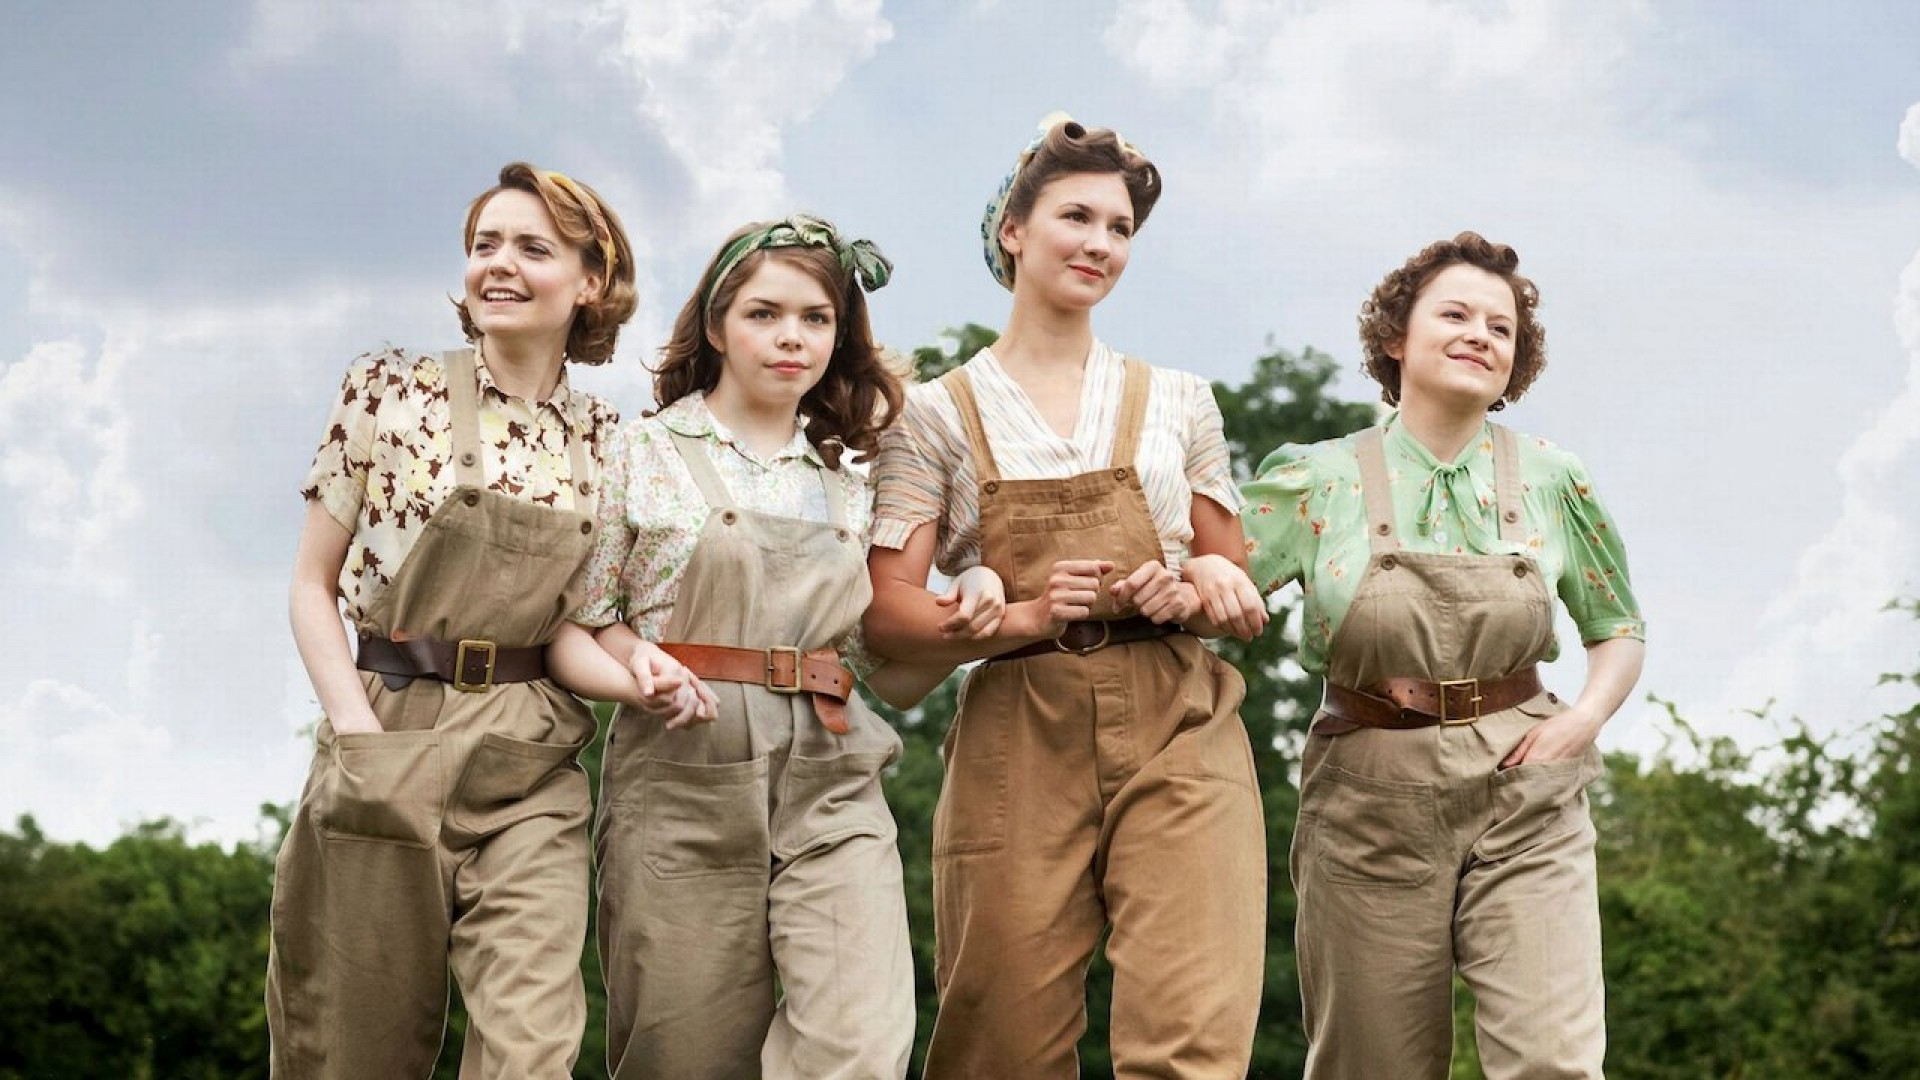 Play Summer 19: The land girls